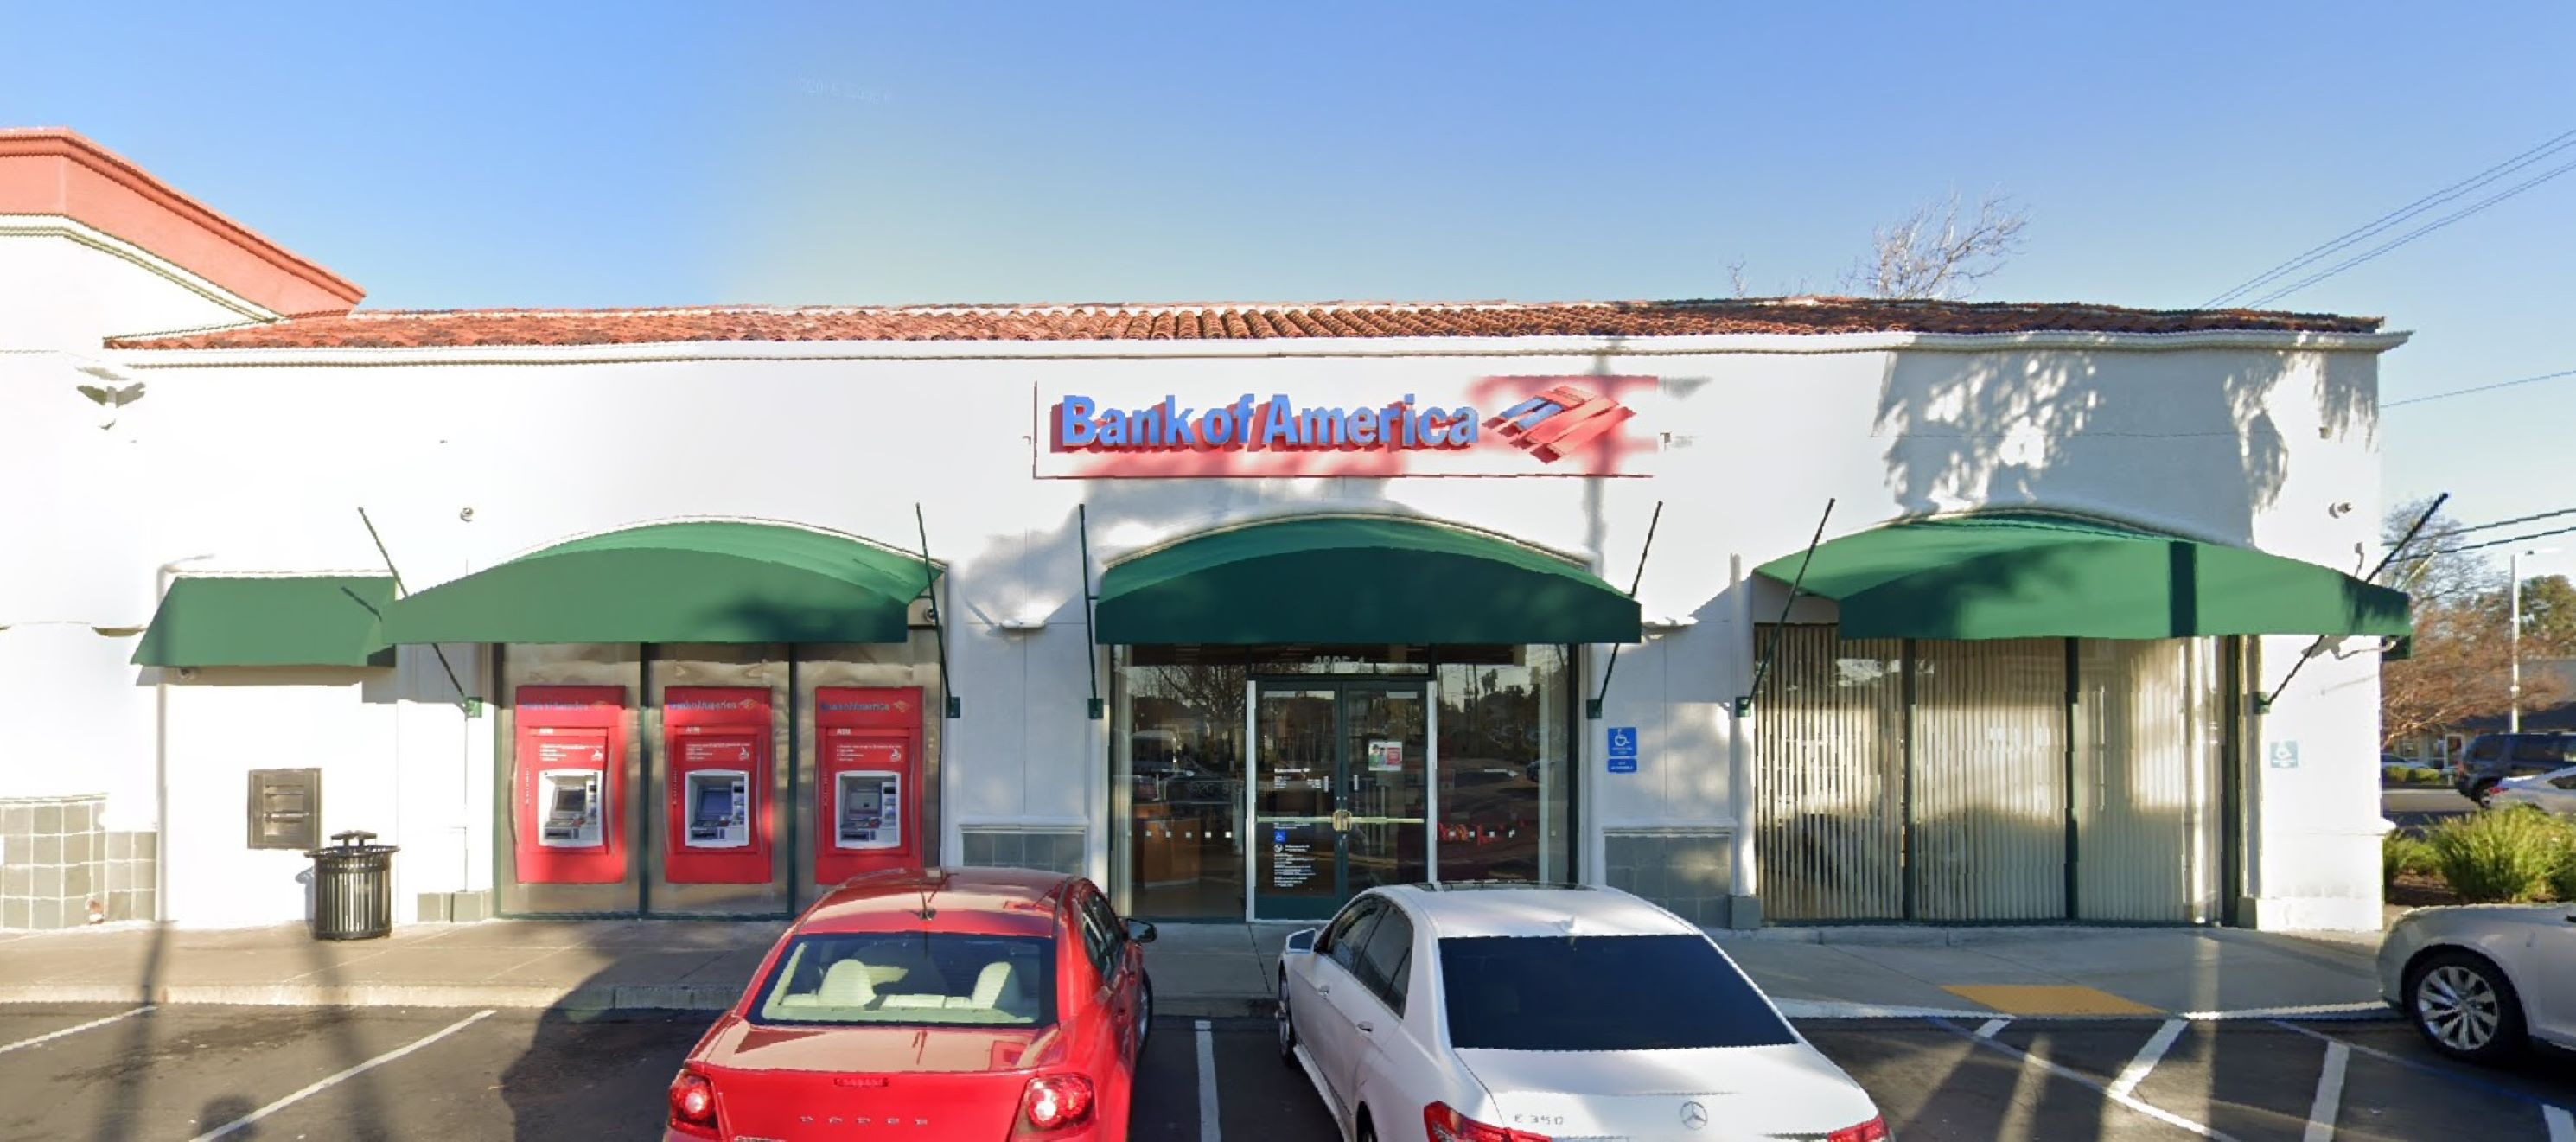 Bank of America financial center with walk-up ATM   2805 Marconi Ave, Sacramento, CA 95821